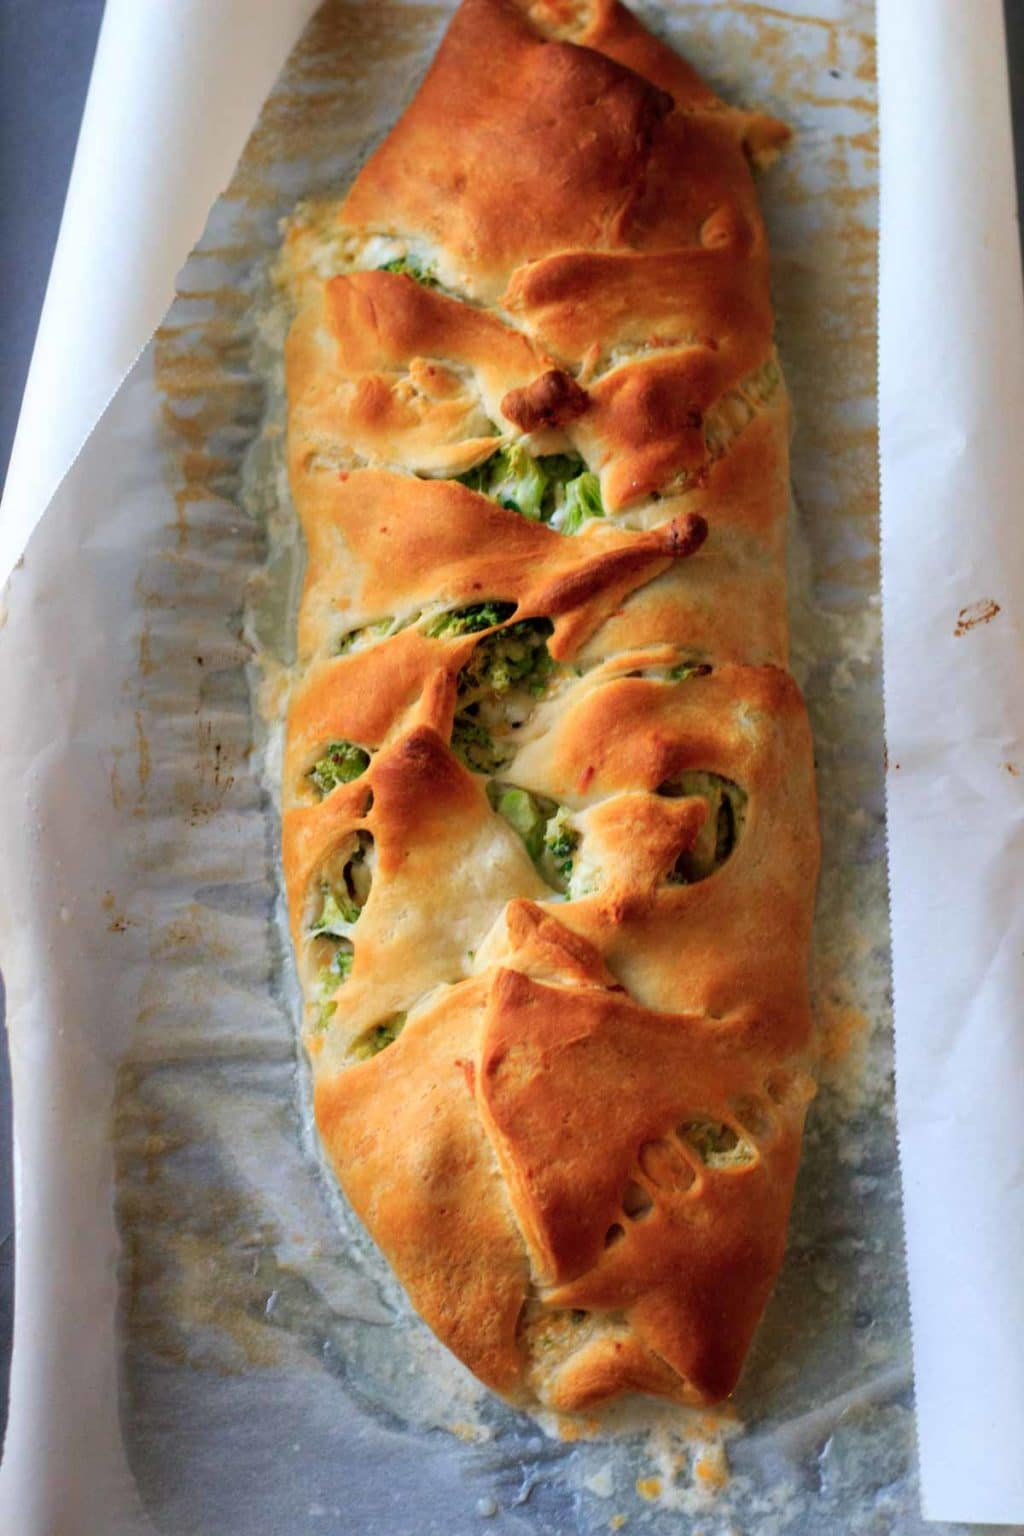 Broccoli crescent wrap - broccoli and cheese goodness all wrapped up in crescent roll dough. Easy, quick vegetarian dinner, made healthy by swapping out the mayonnaise!